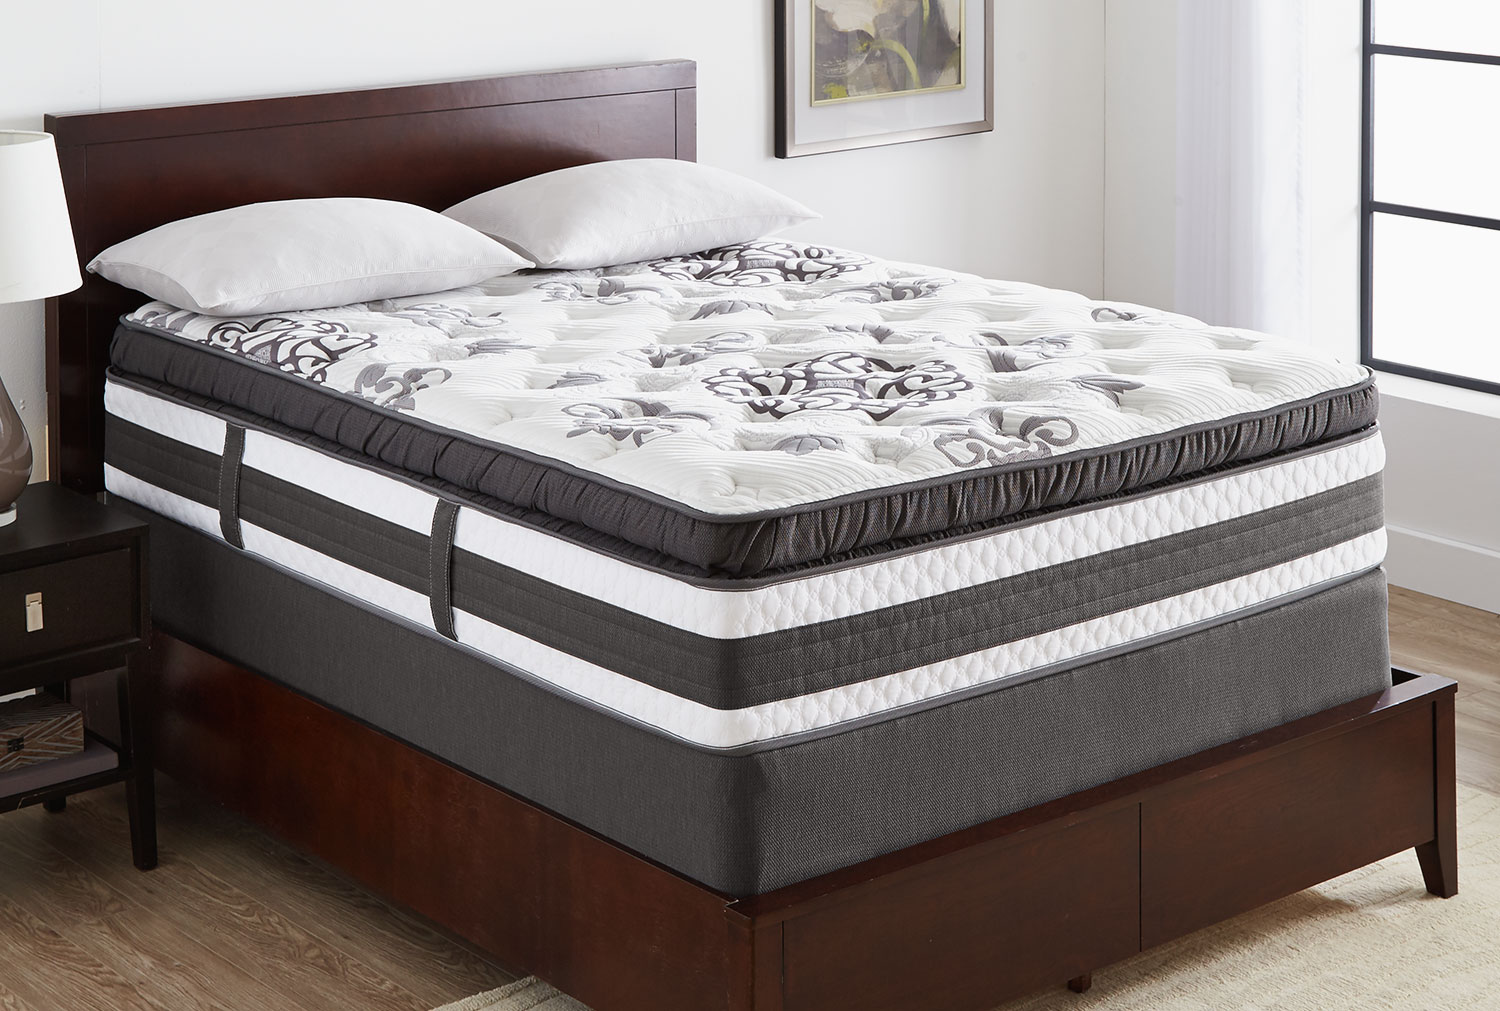 Serta iCollection Hopedale Super Pillow-Top Plush Queen Mattress Set